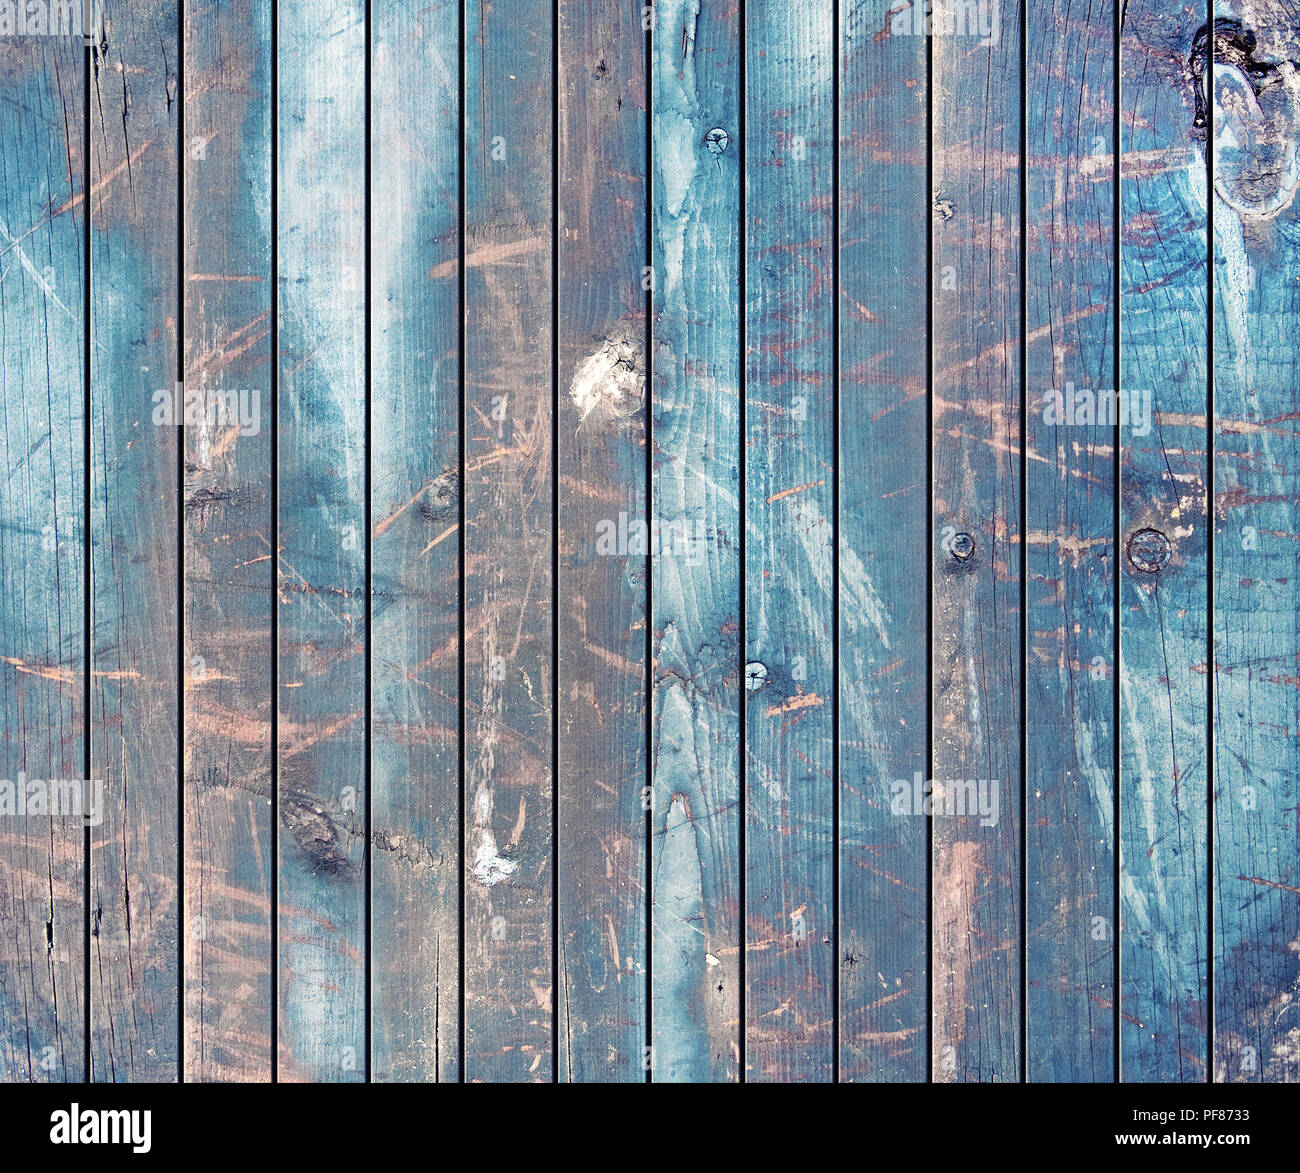 Brown and Blue Painted Wood Planks as Background, Natural Weathered Texture - Stock Image